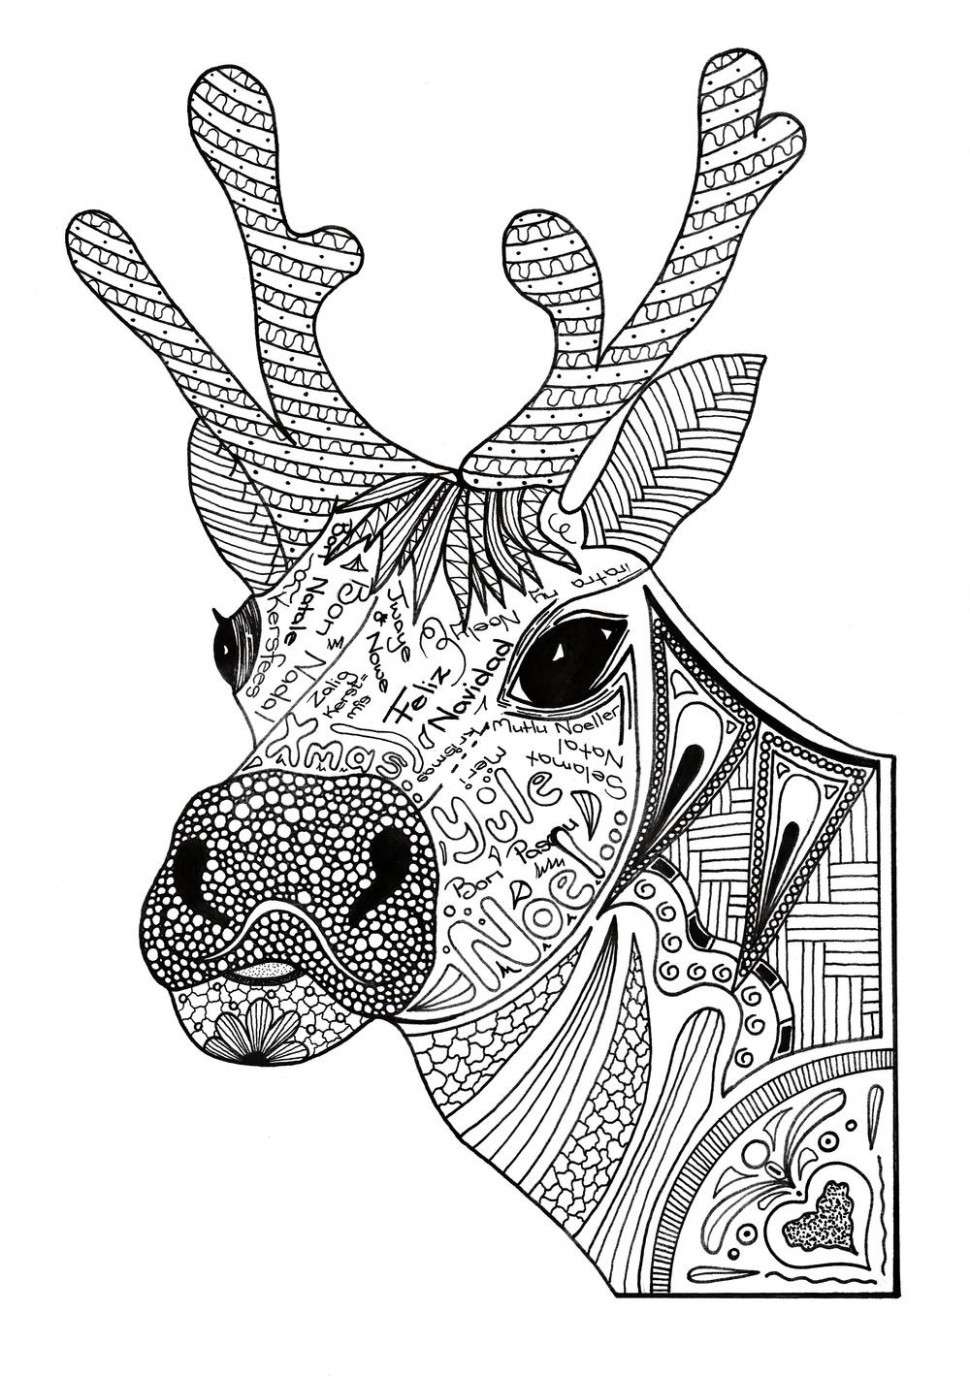 coloring ~ Coloring Reindeer Sheet Easy Page Withhristmas Pages ...